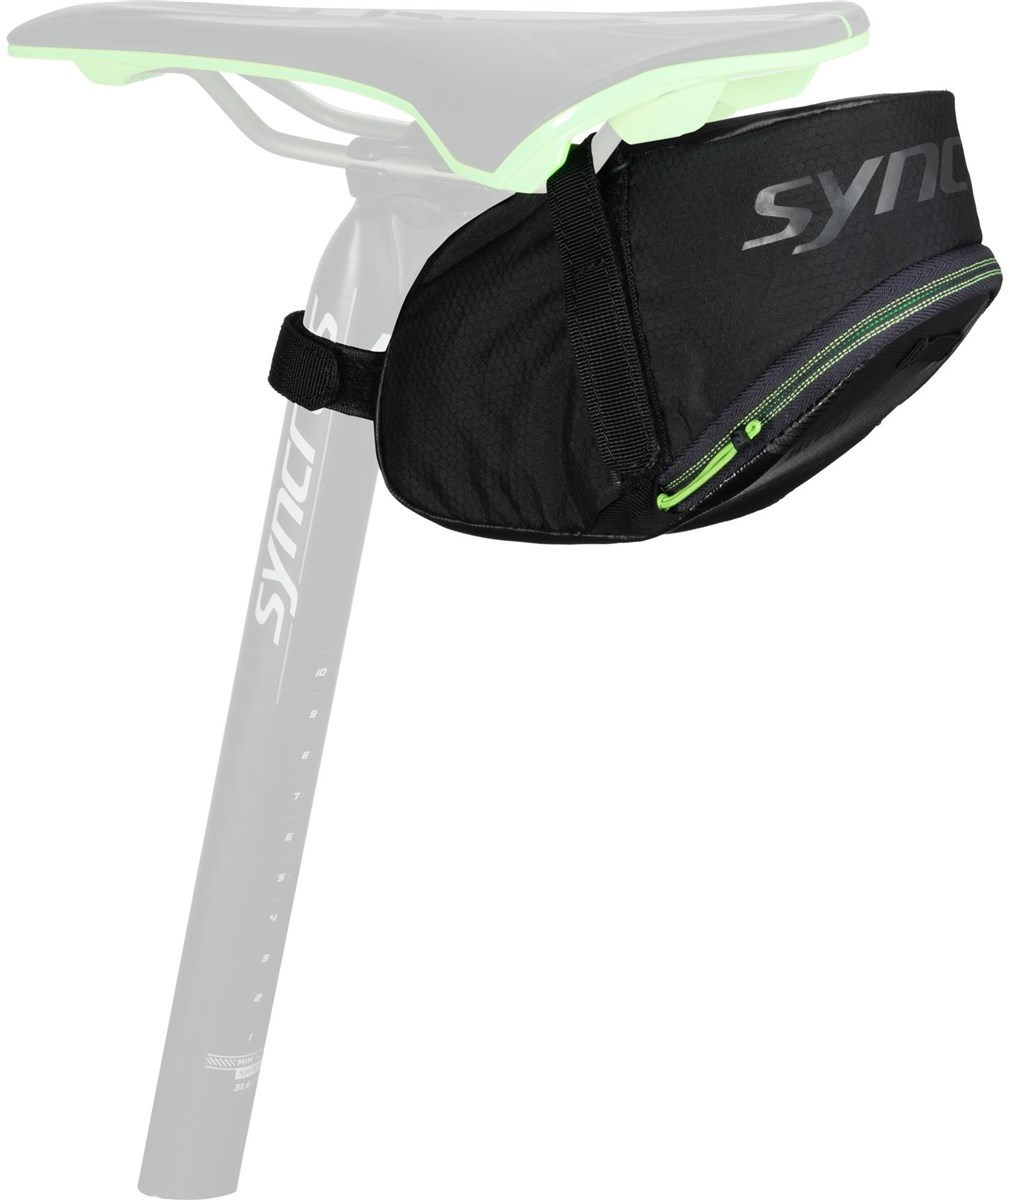 Syncros HiVol 750 Saddle Bag with Strap